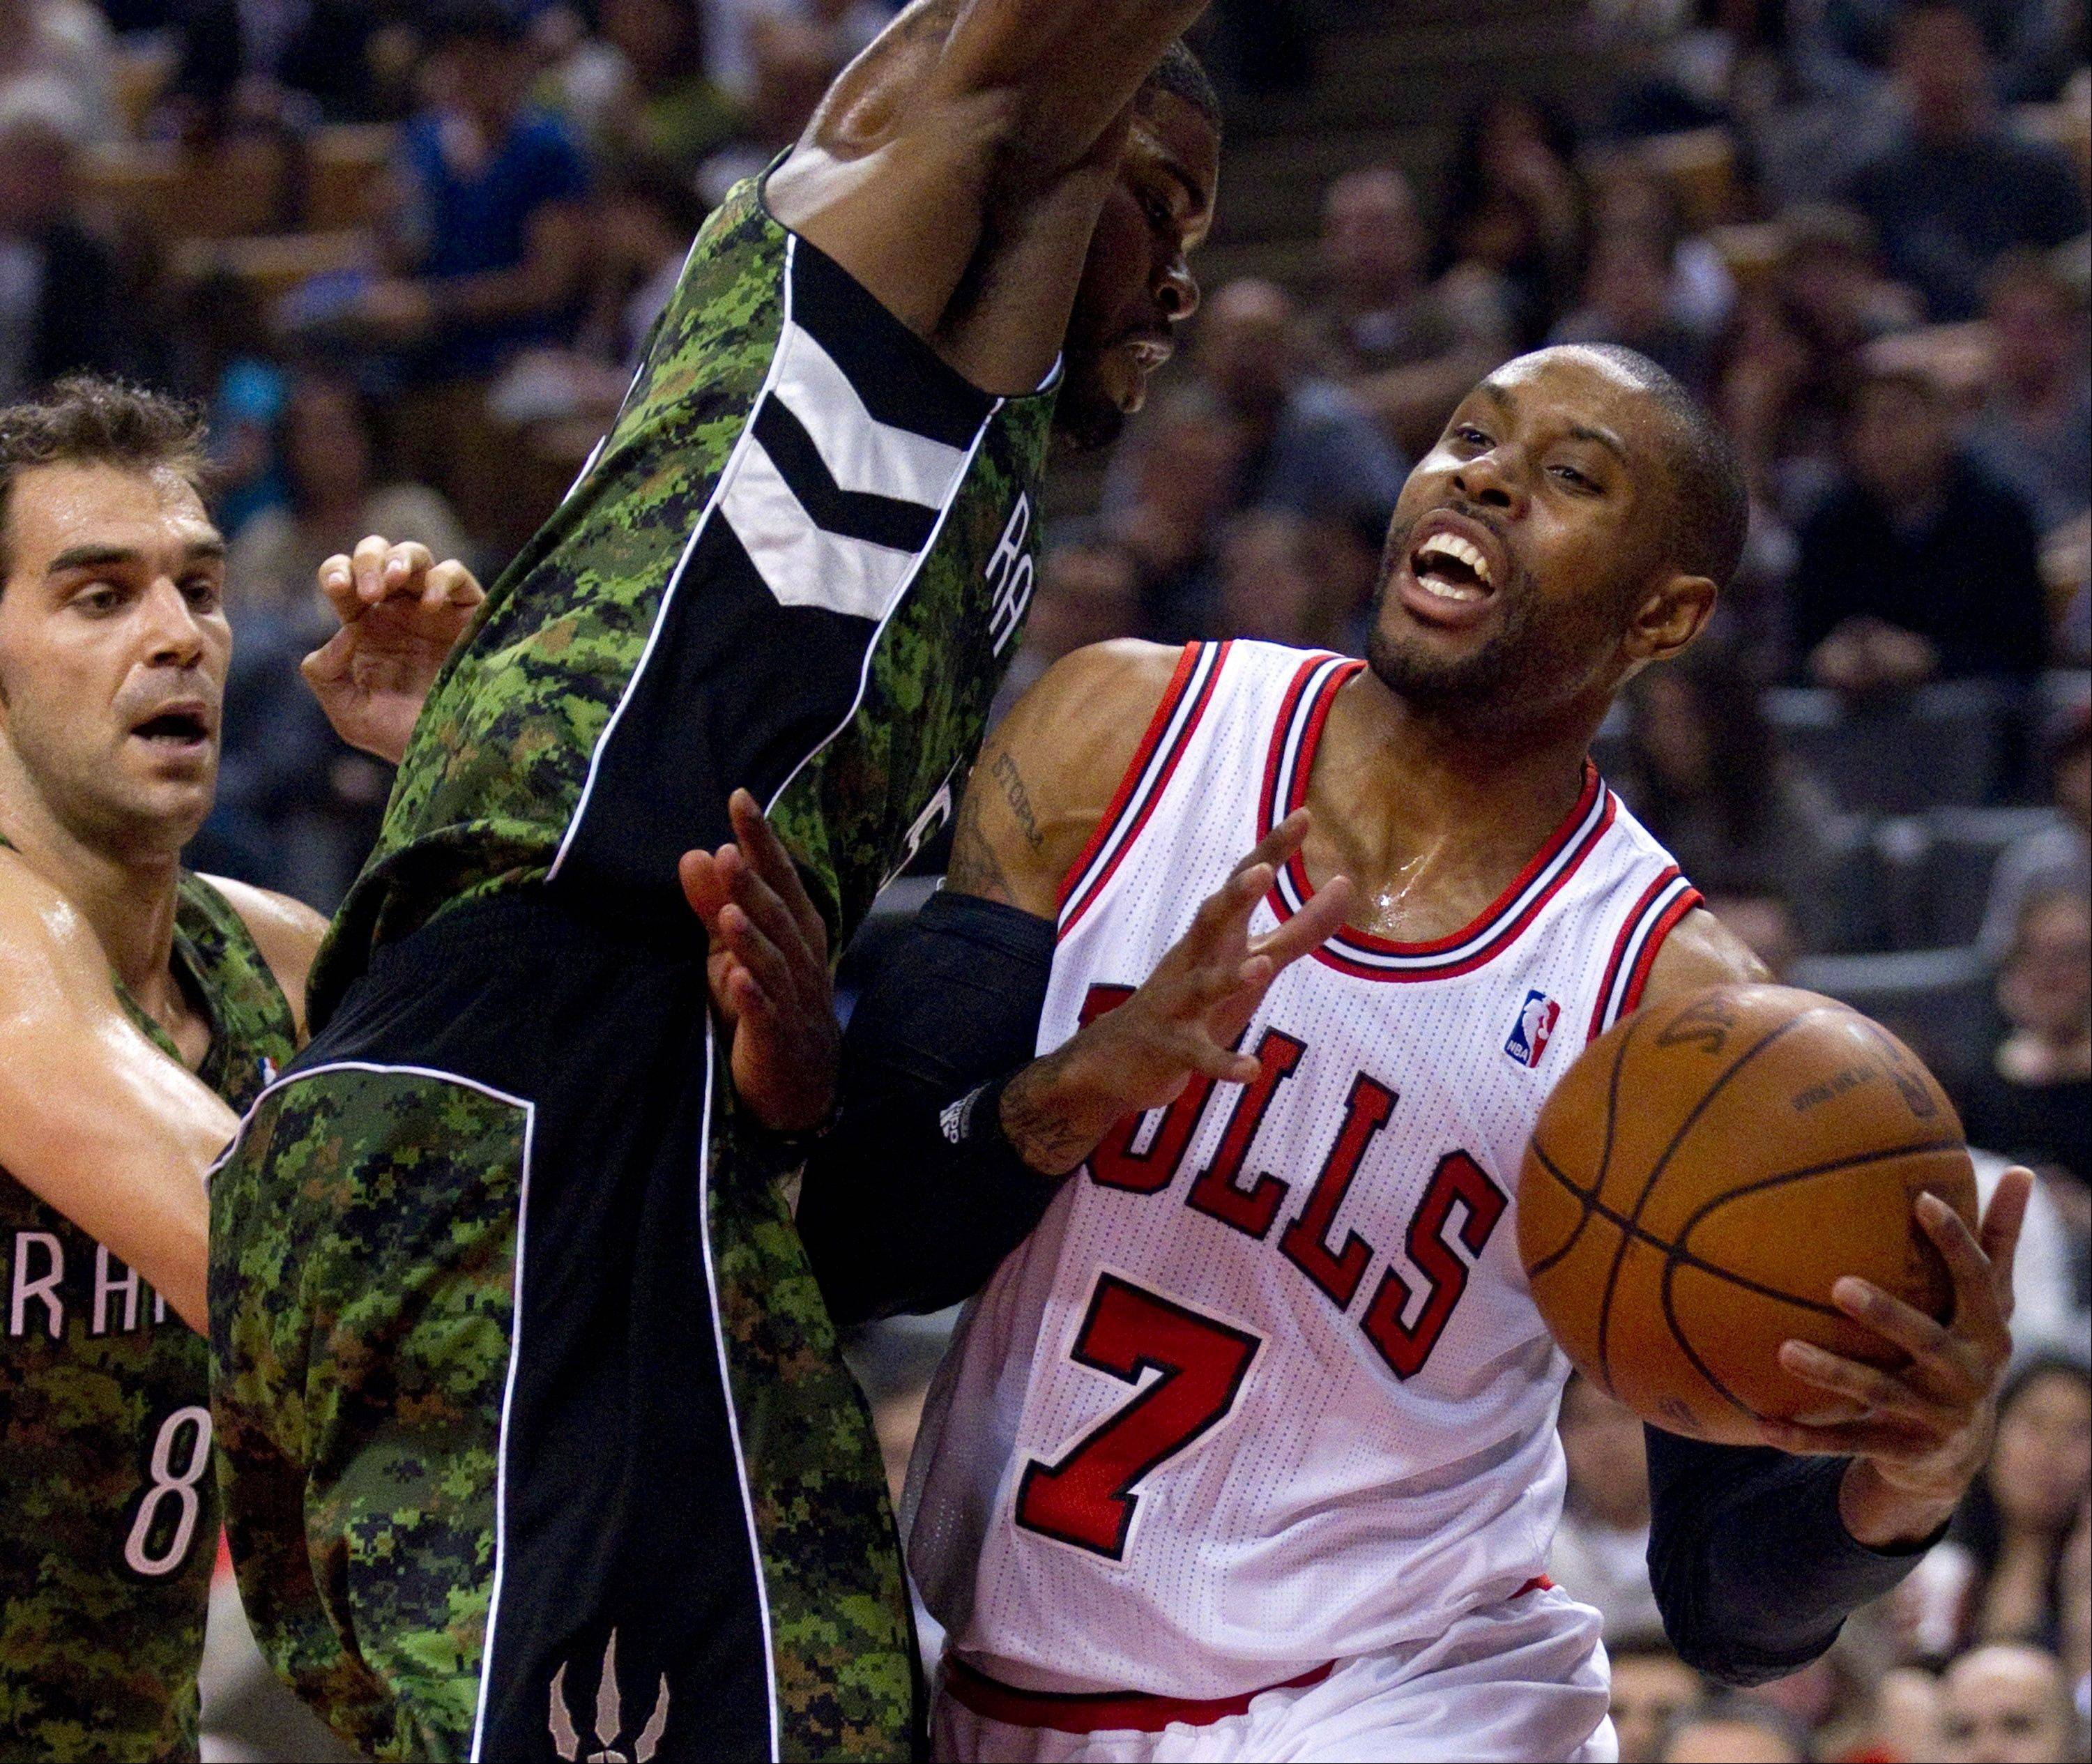 Bulls guard C.J. Watson drives to the hoop past the Toronto Raptors' Amir Johnosn, center, and Jose Calderon Wednesday.